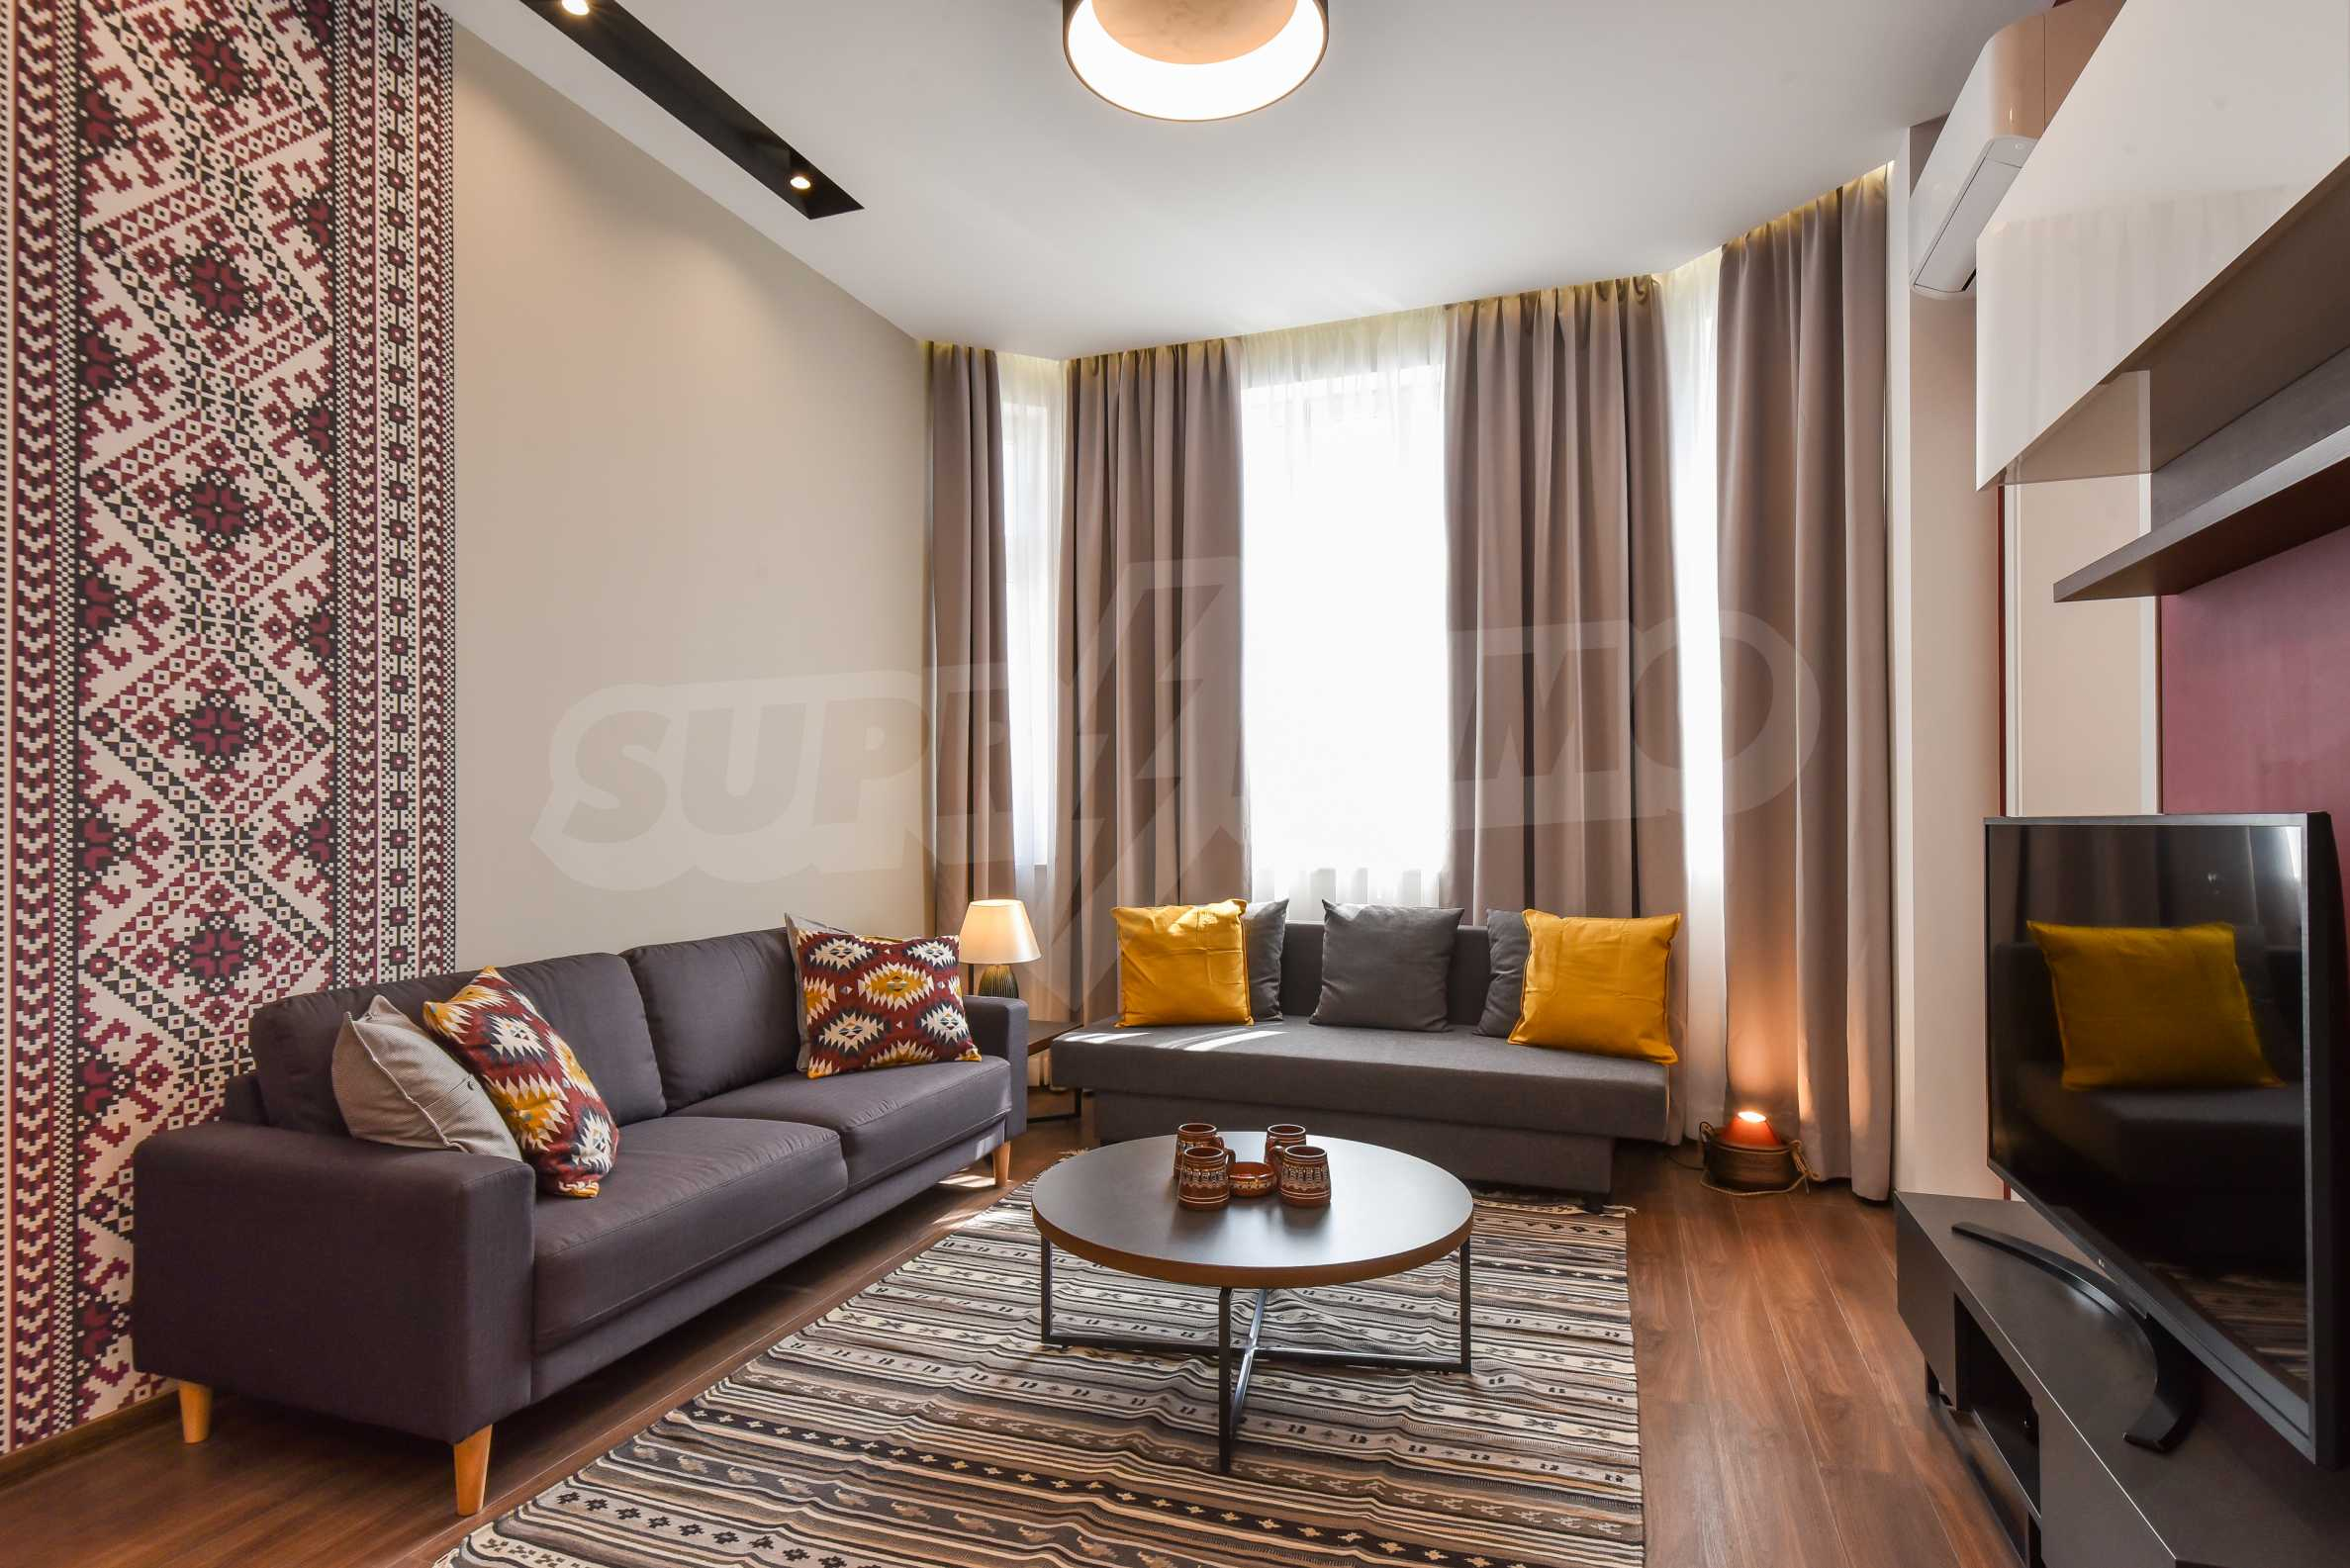 Modern three bedroom apartment with working business in the center of Sofia